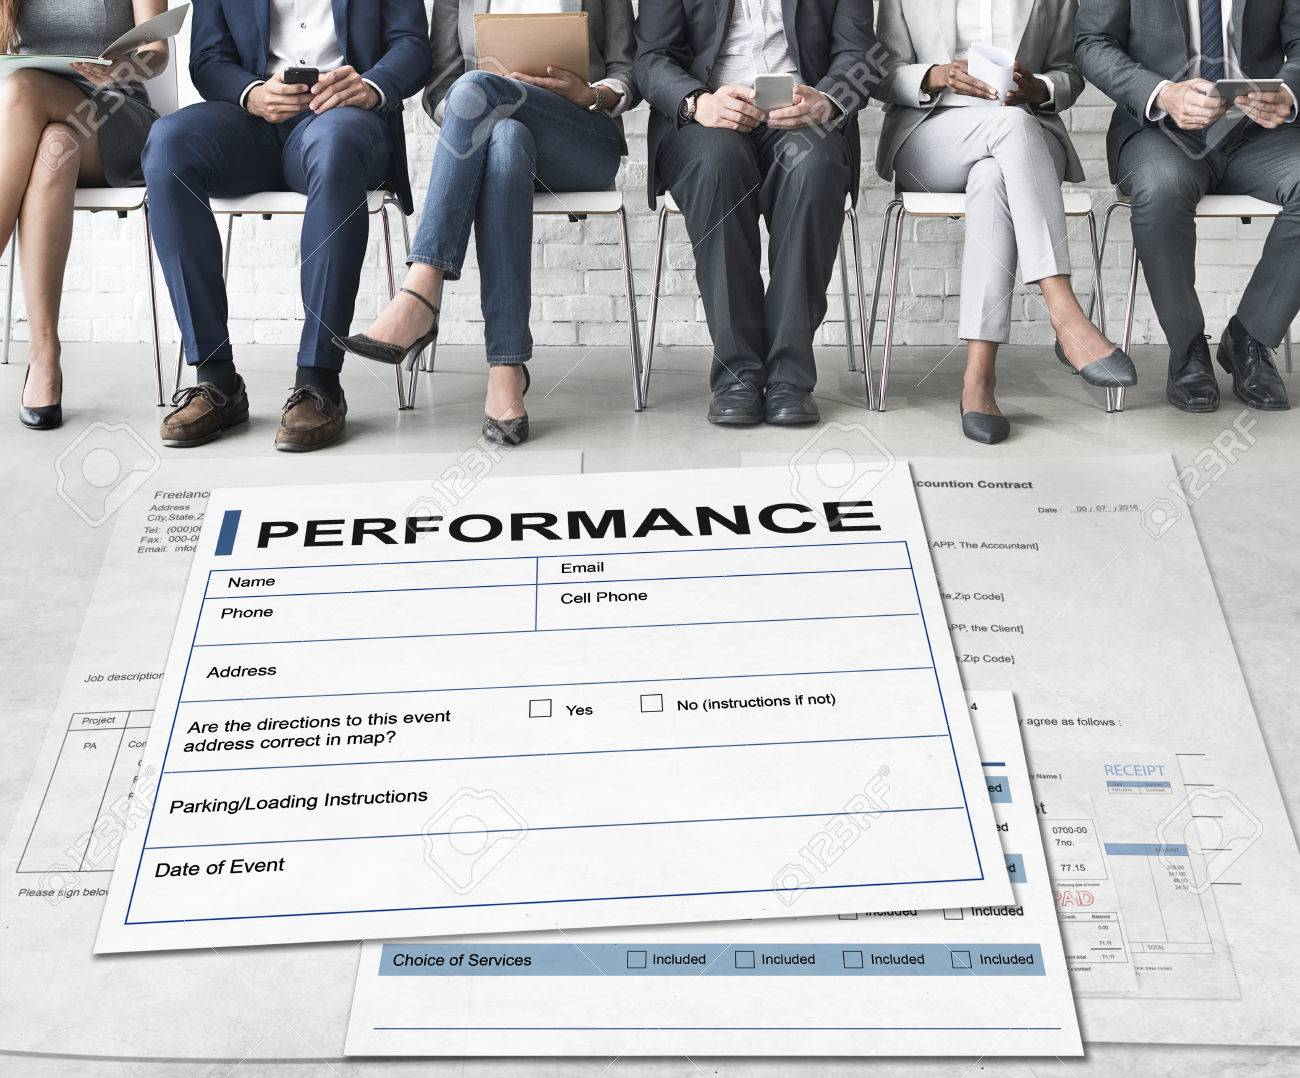 Performance agreement contract legal document concept stock photo performance agreement contract legal document concept stock photo 60886915 altavistaventures Choice Image